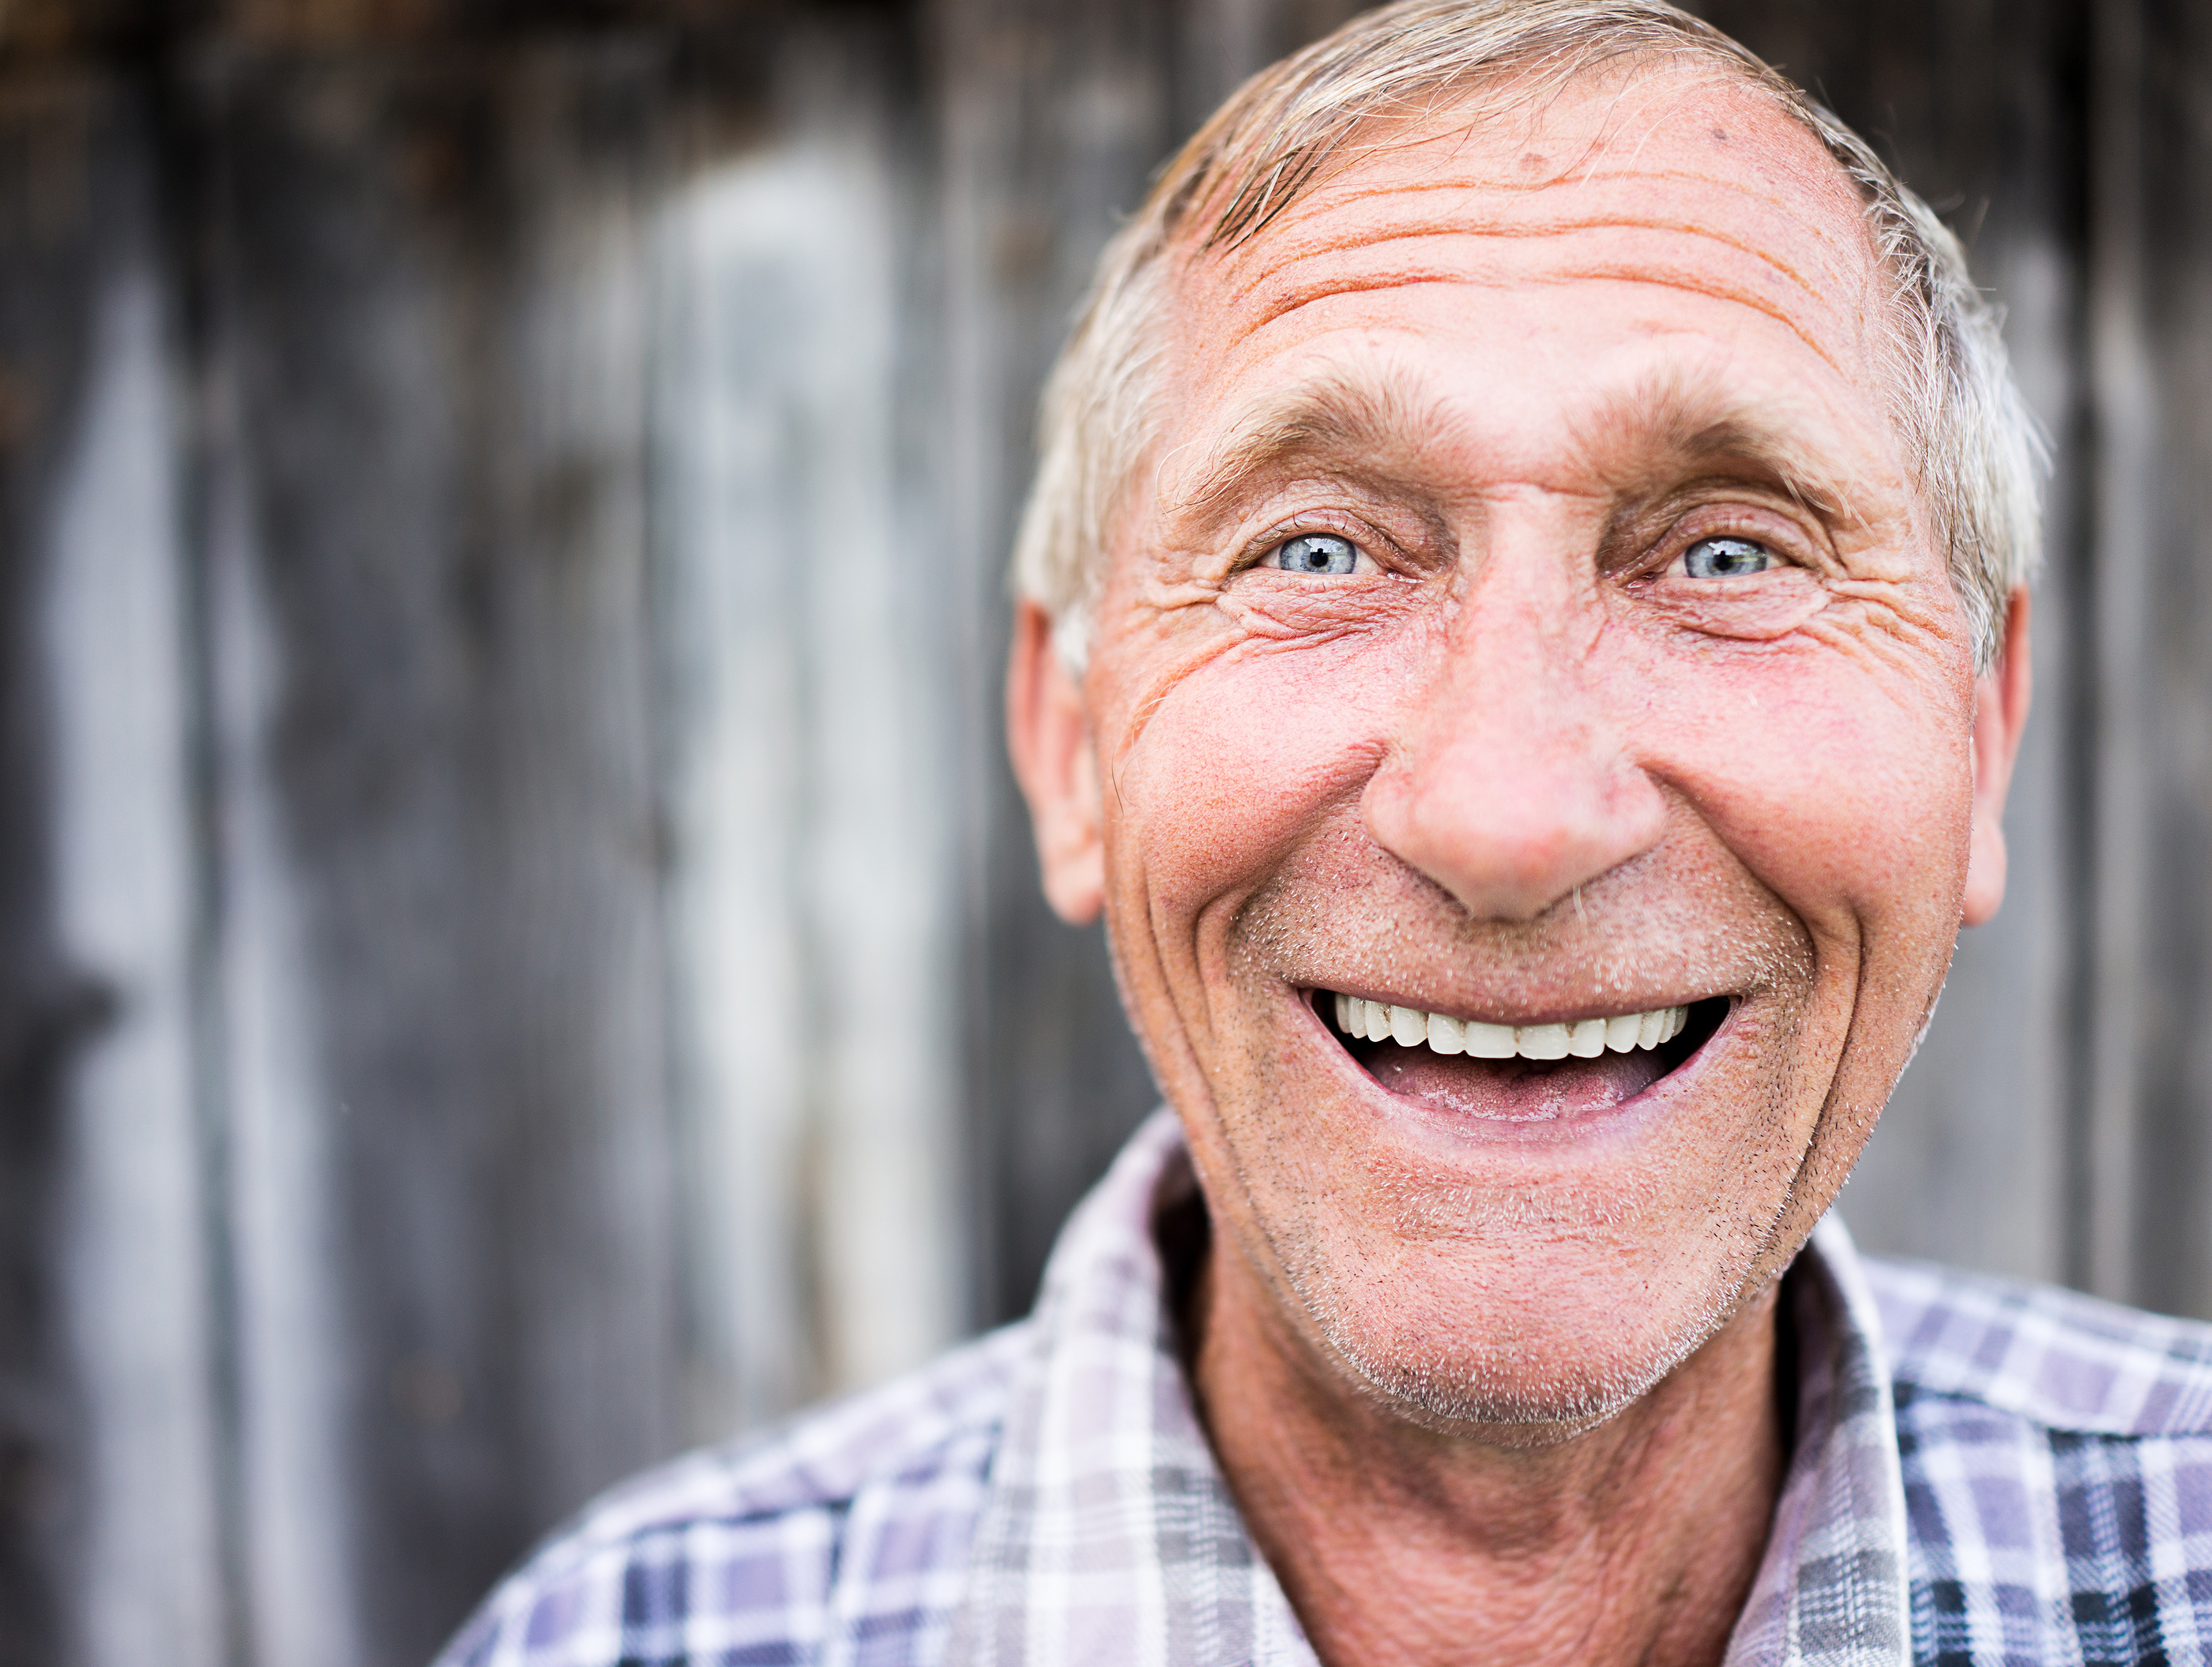 20 Things to Know About Getting A Dental Implant In Santa Fe